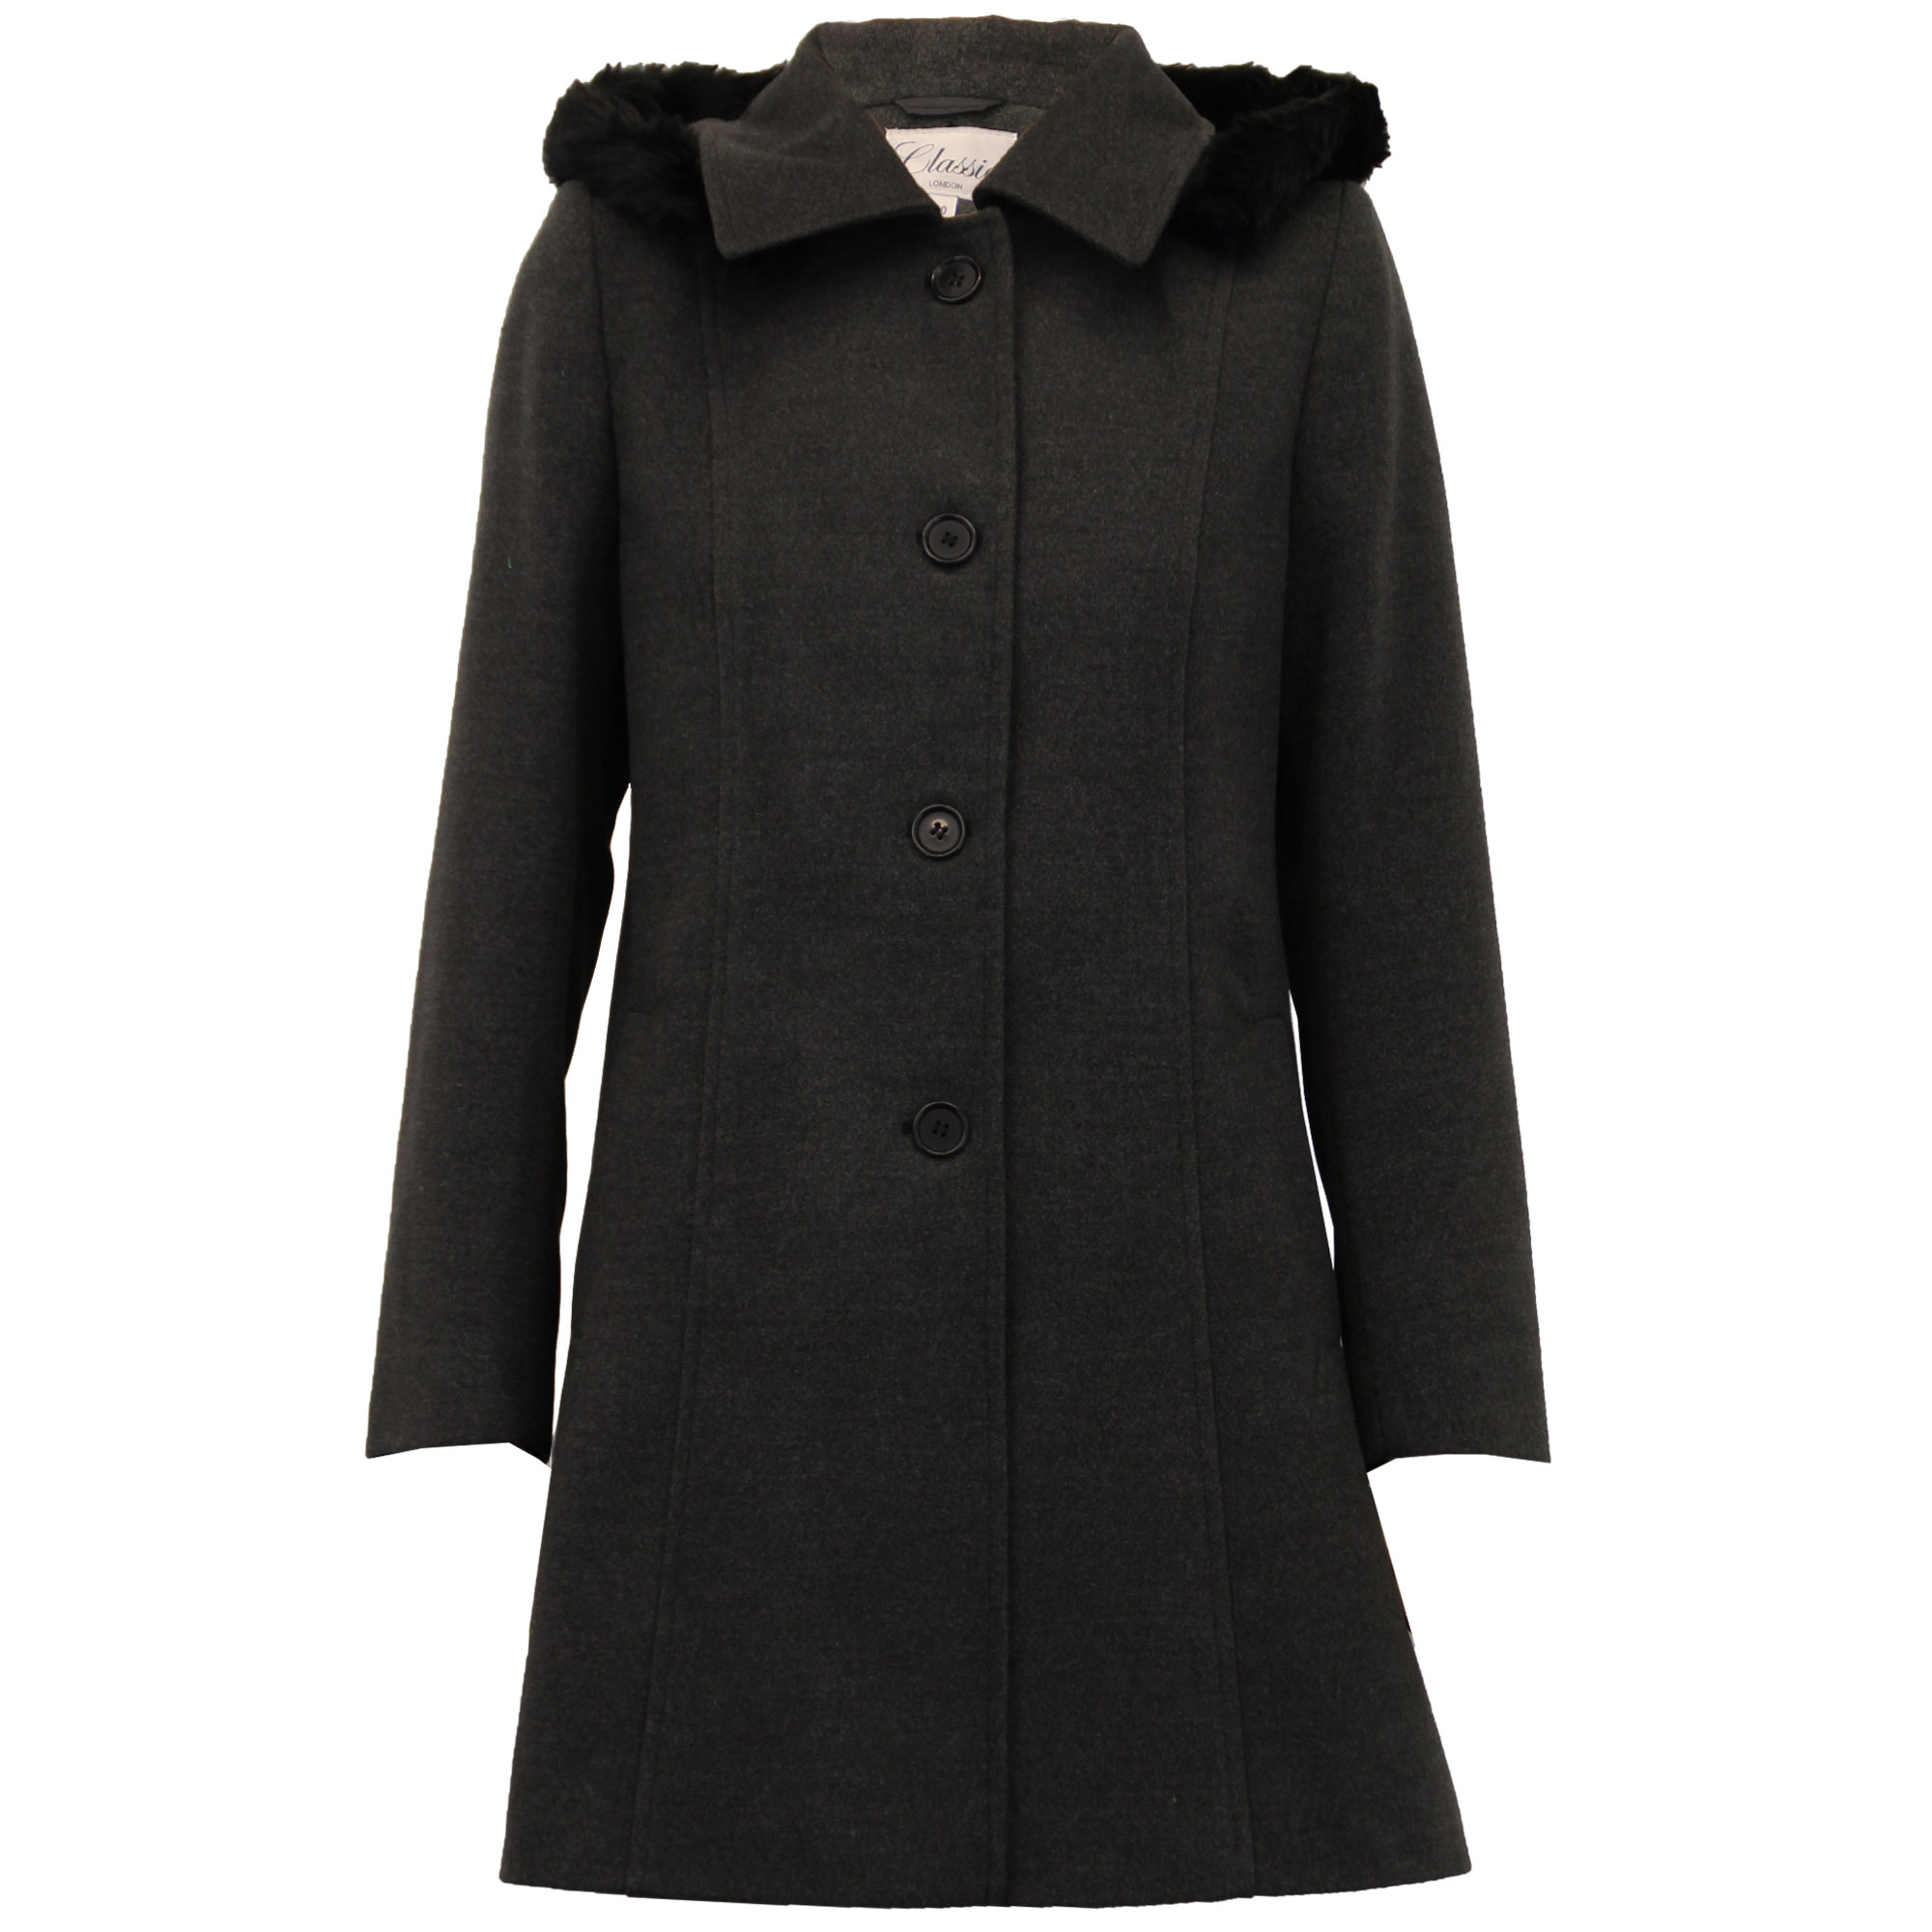 Shop the latest styles of Womens Fur Coats at Macys. Check out our designer collection of chic coats including peacoats, trench coats, puffer coats and more! The Fur Vault Fox-Fur-Trim Hooded Belted Wool Coat $2, Now $1,